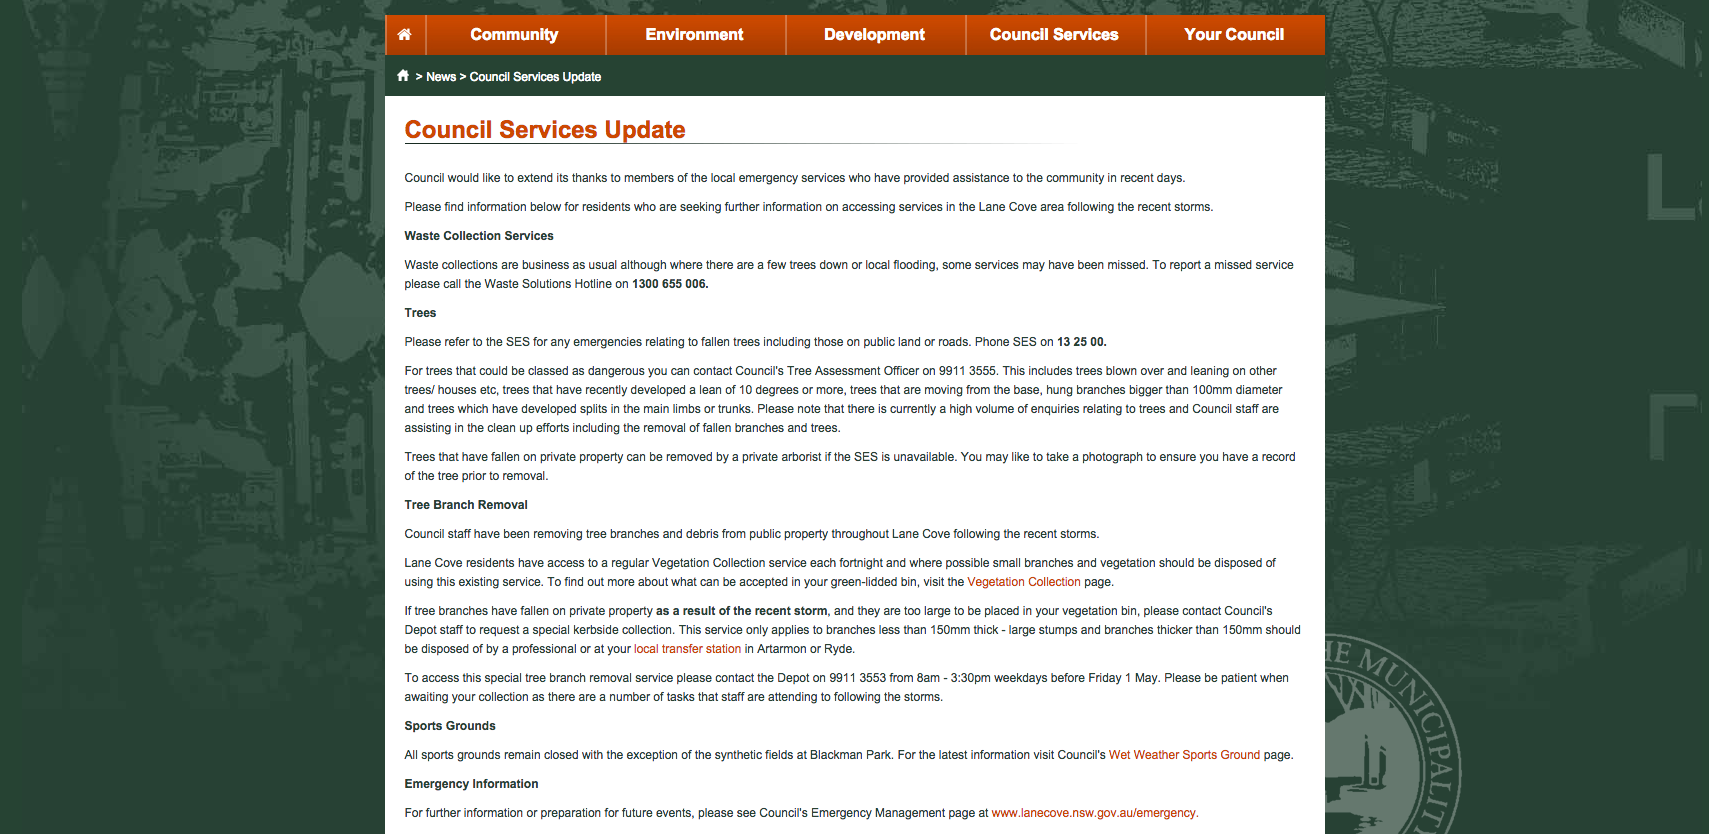 Council Services Update